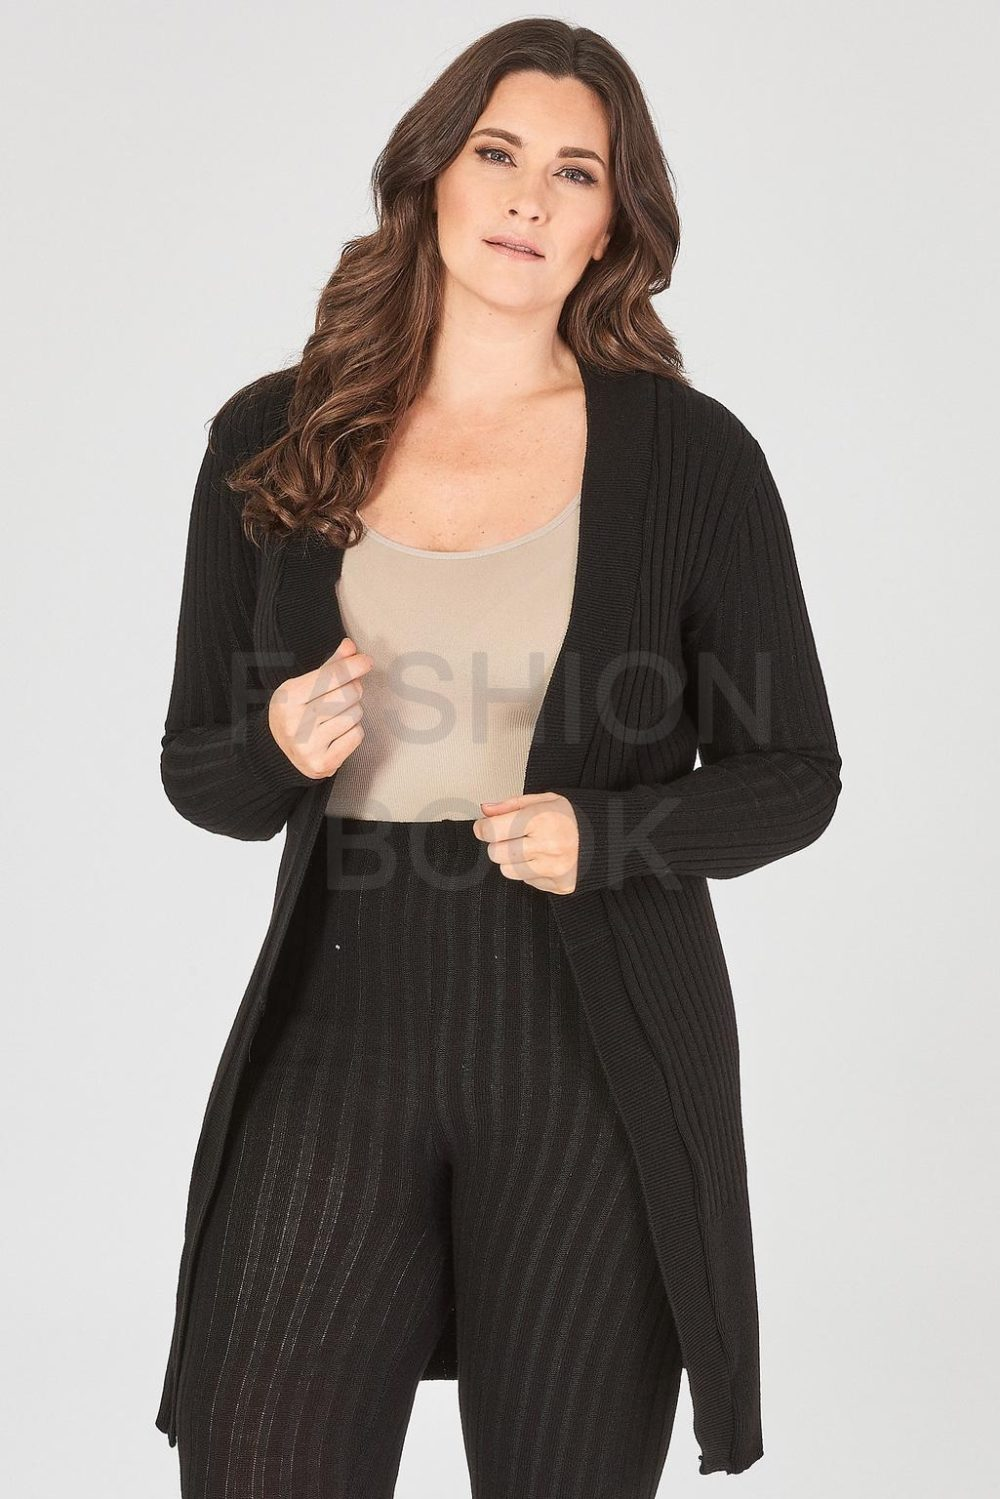 fashionbook wholesale plus size knitted cardigan